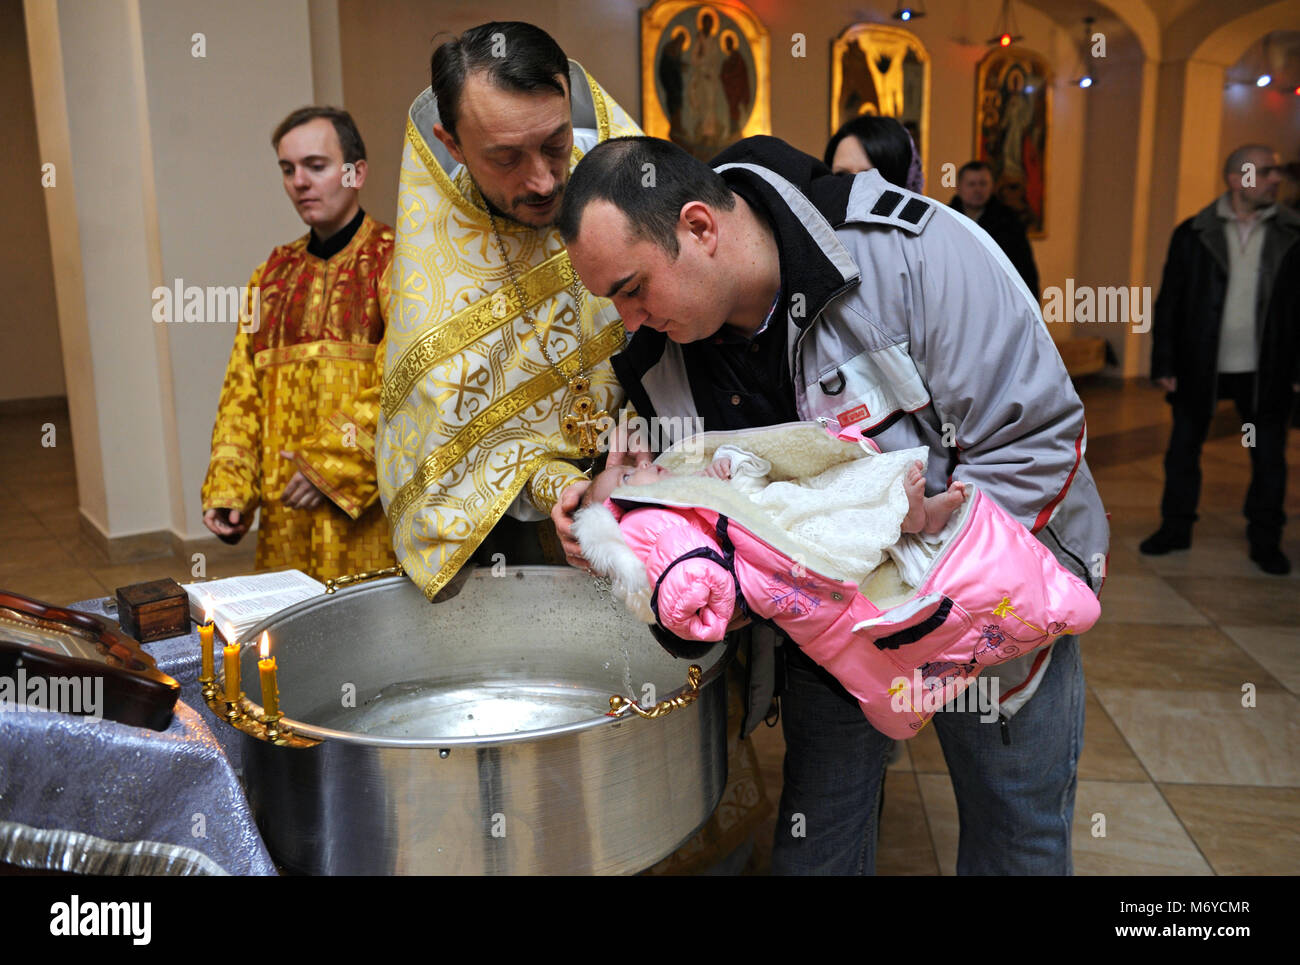 Christening for baby in a rural church. Priest standing in front of a man with a baby on hands and baptizing a child. - Stock Image